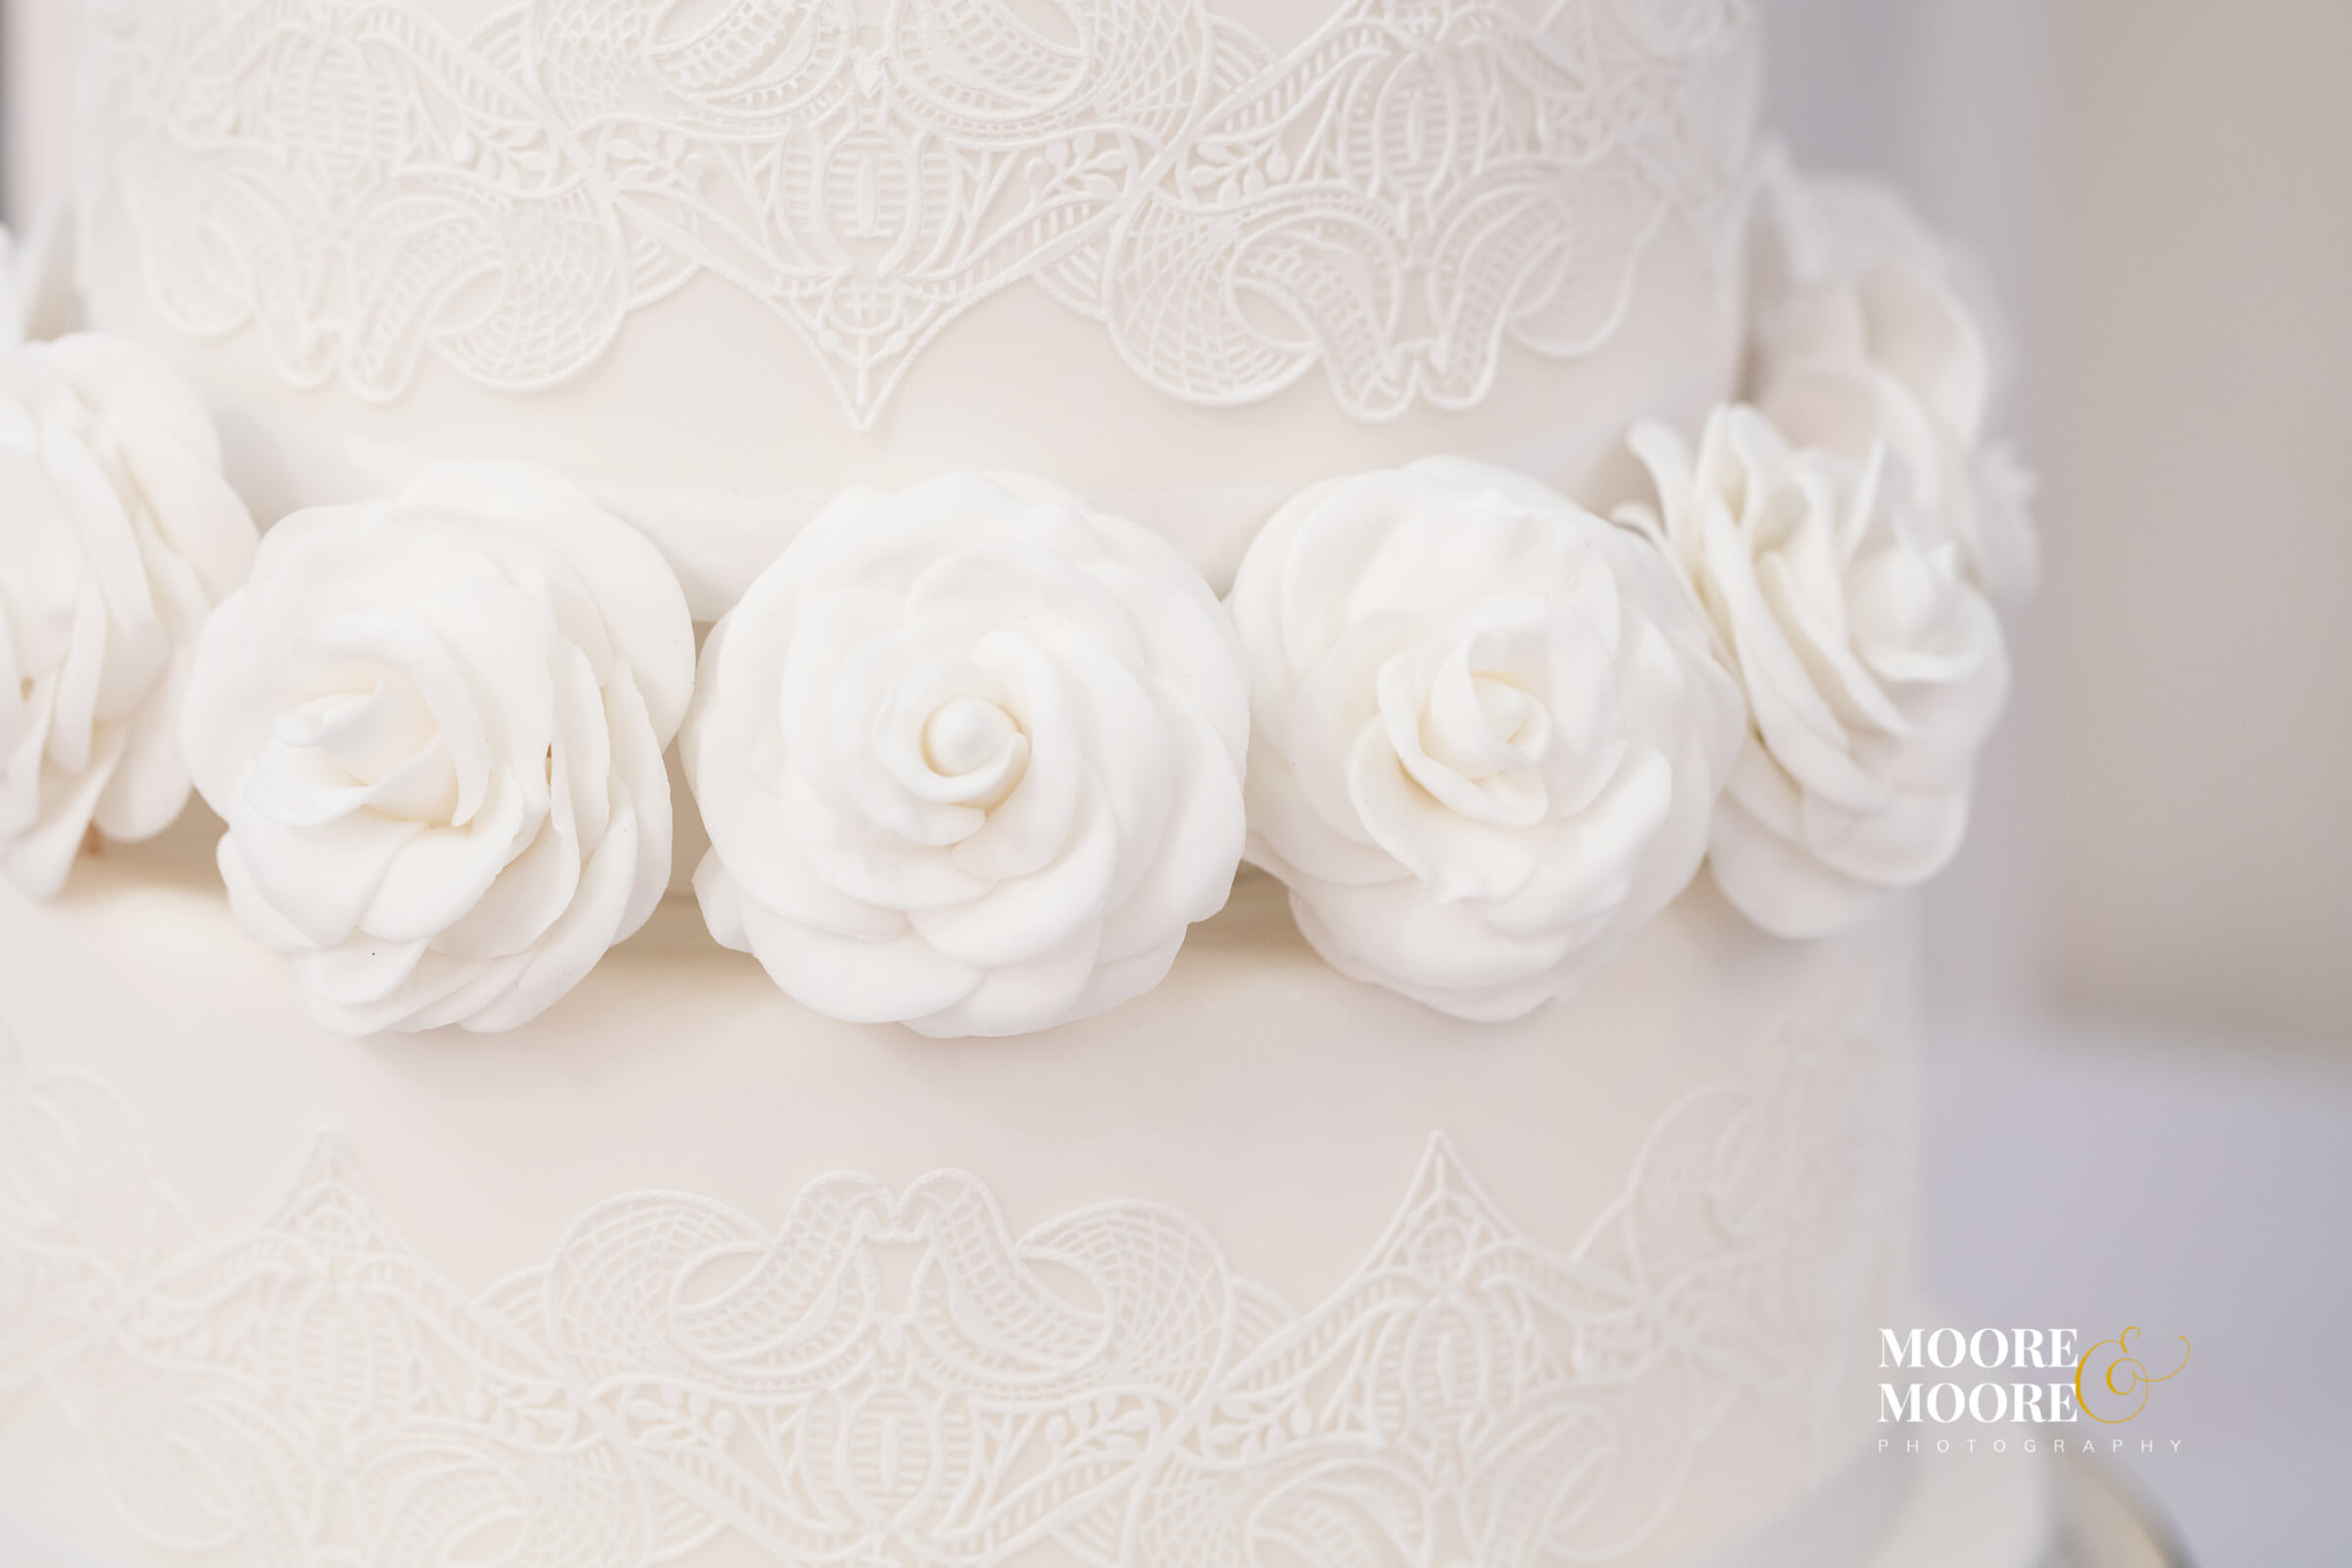 elegant wedding cake with white roses, wedding photos by Hampshire Wedding Photographer, Helen Moore of Moore&Moore Photography